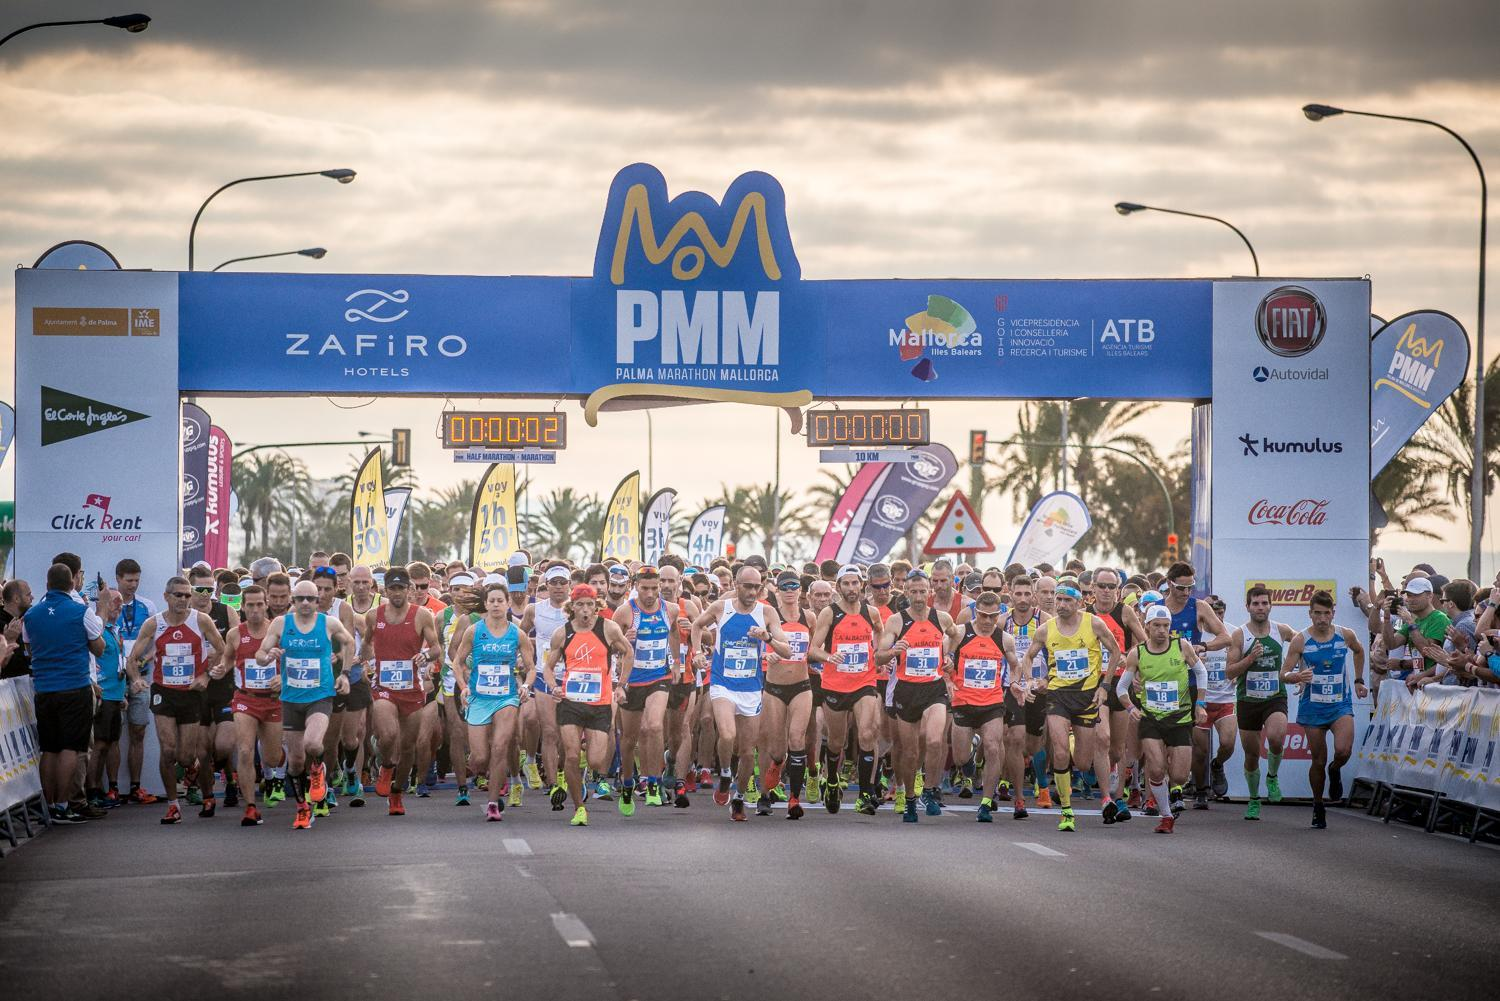 Palma is running – Zafiro Marathon Mallorca on 13th of October